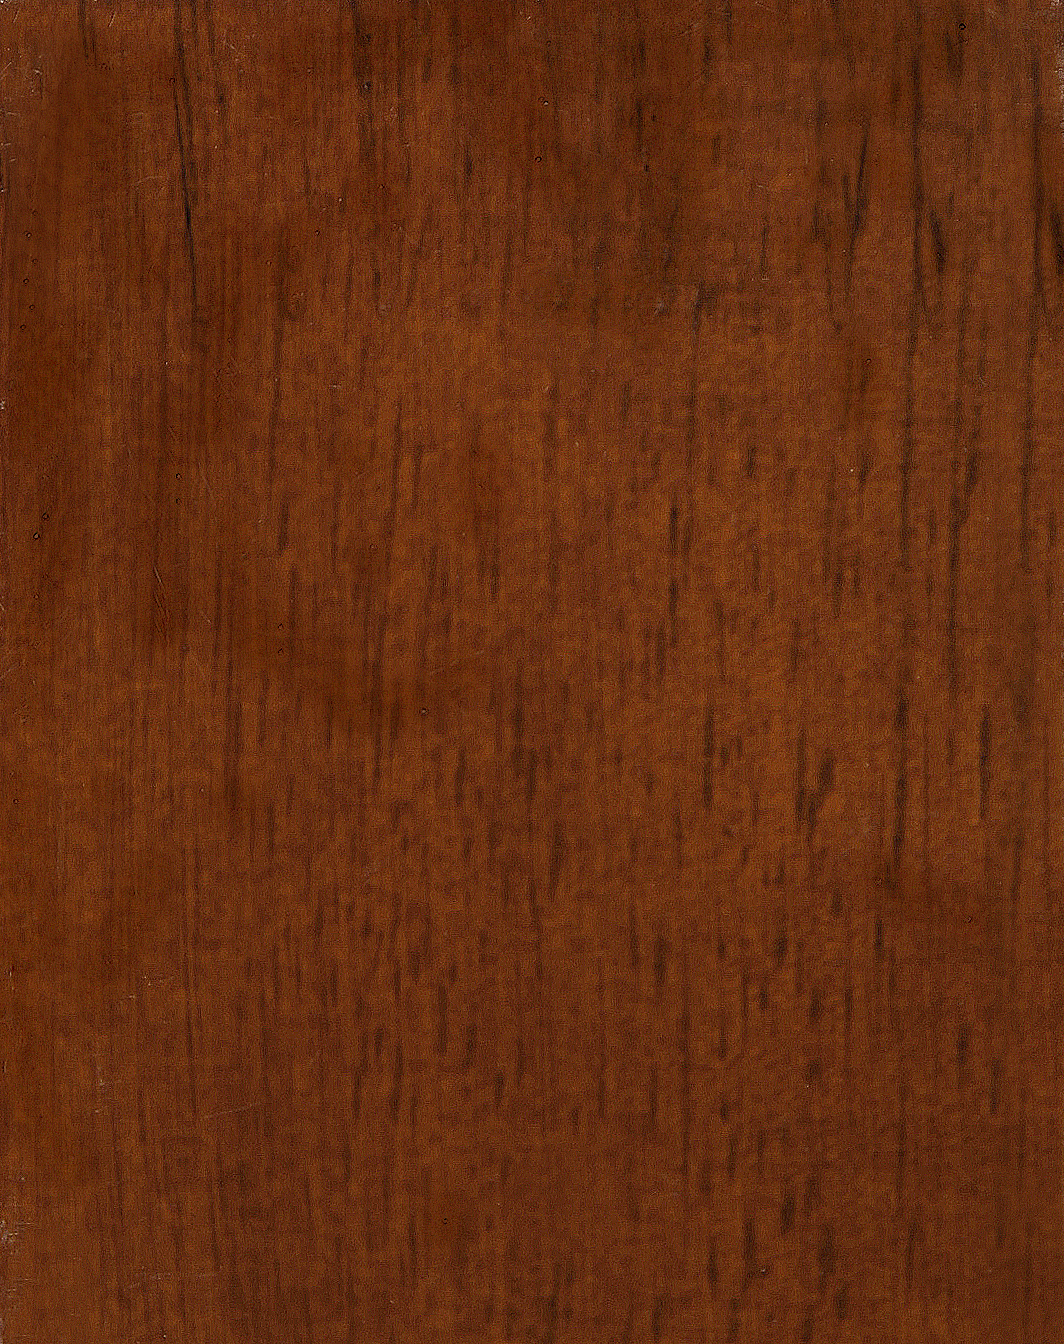 Wood_Oak_Cherry.jpg